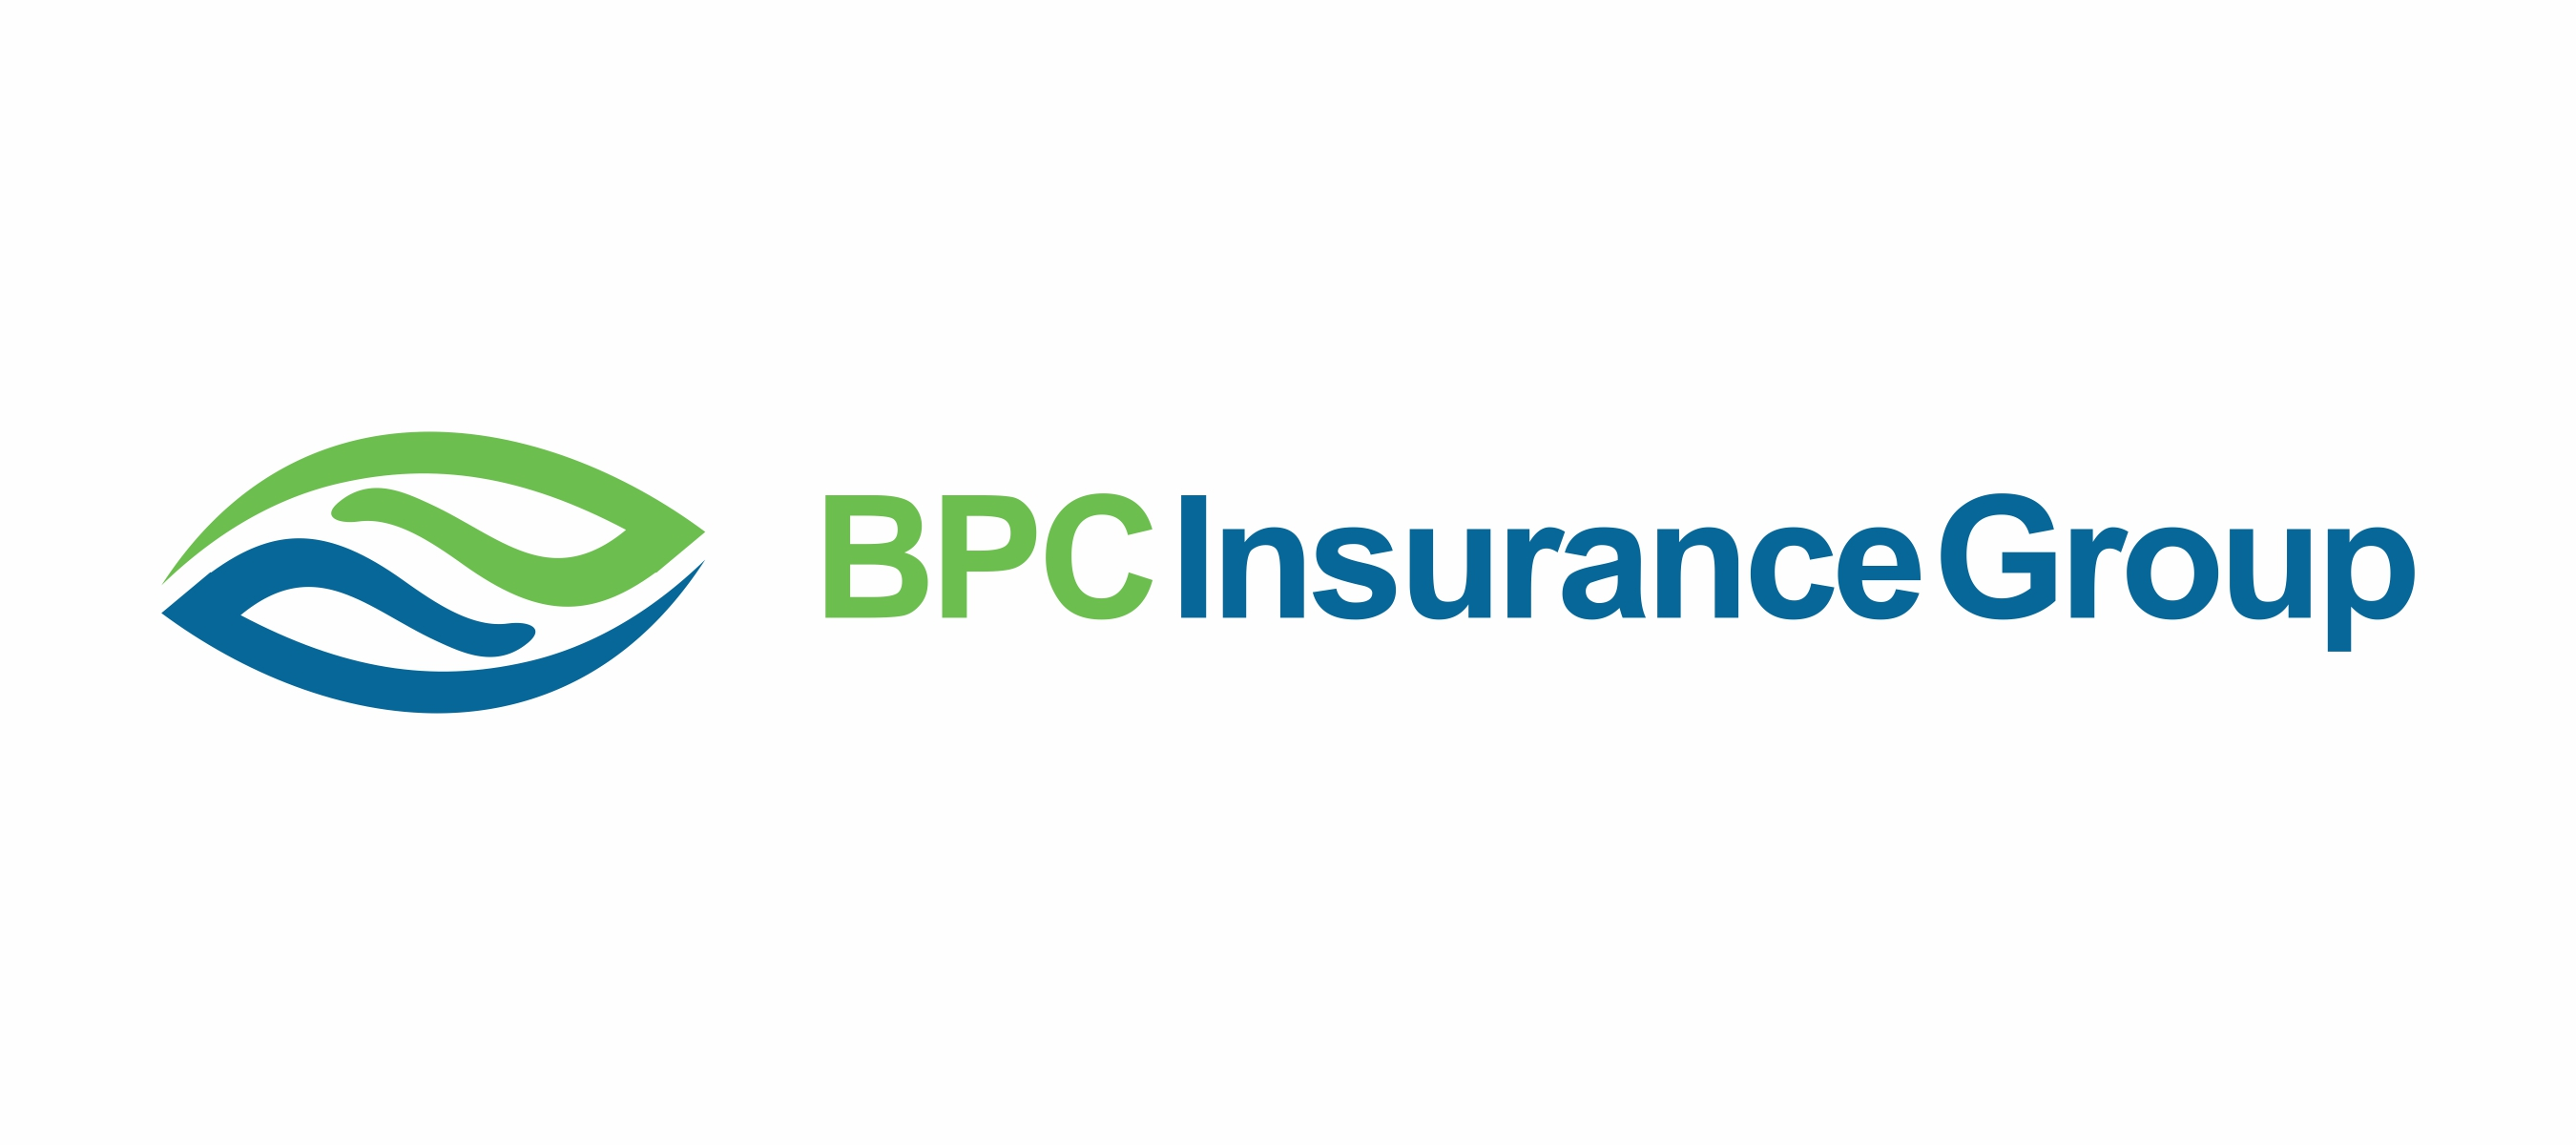 BPC Insurance Group